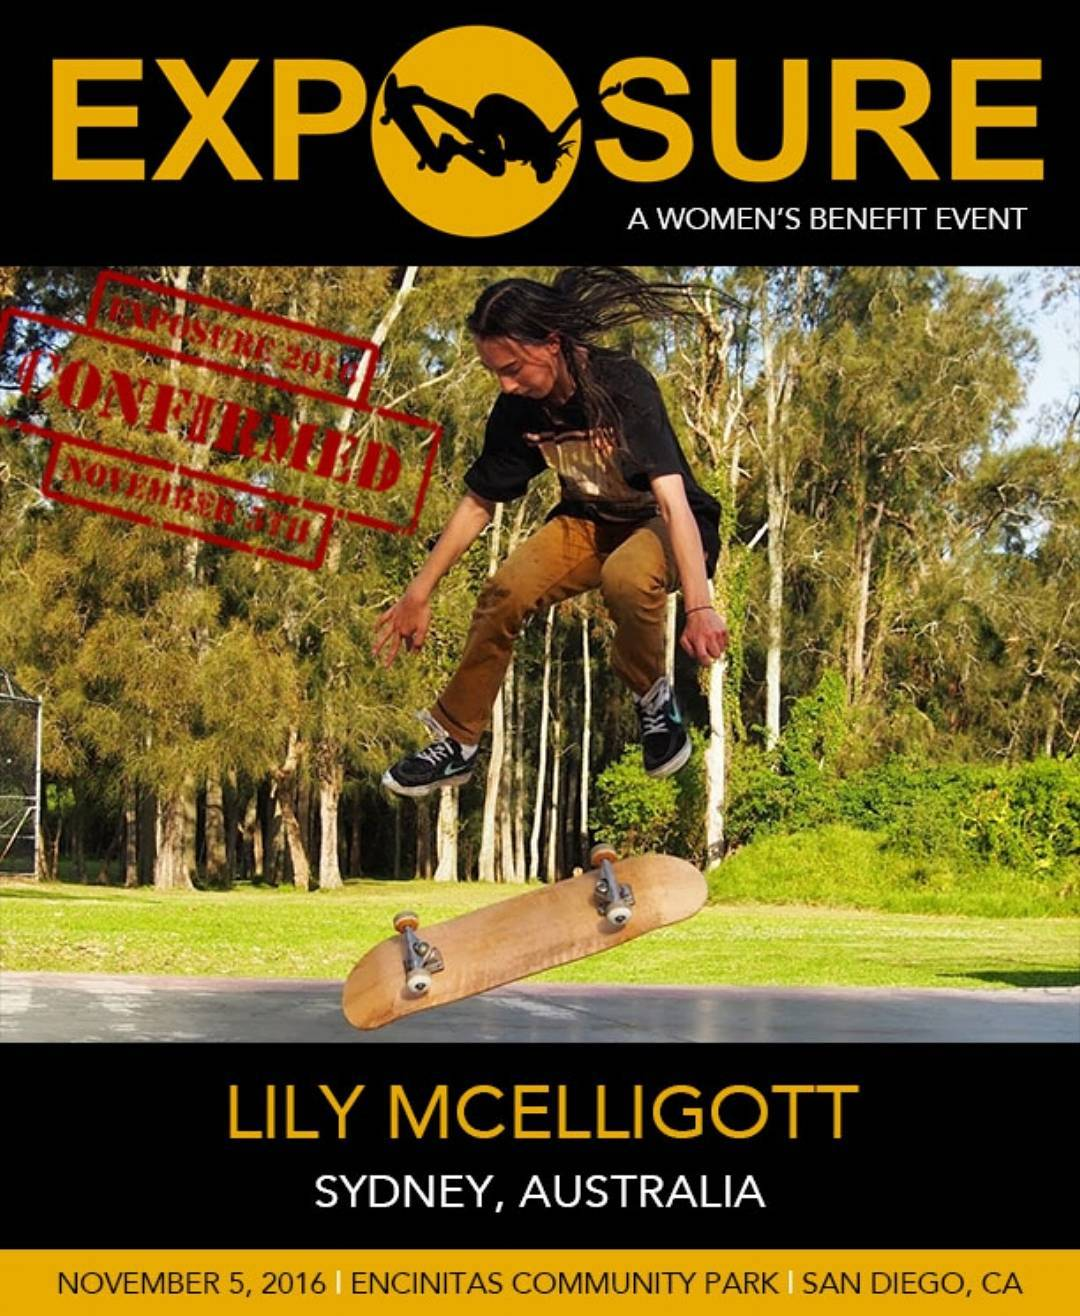 Our apology to Lily for getting the wrong image yesterday, and a Thank You to everyone who brought it to our attention ( esp. @martyr_skate & @diablocanyon2 ) . Lily McElligott IS confirmed, and we are stoked she is going to compete in our 15 & Over...